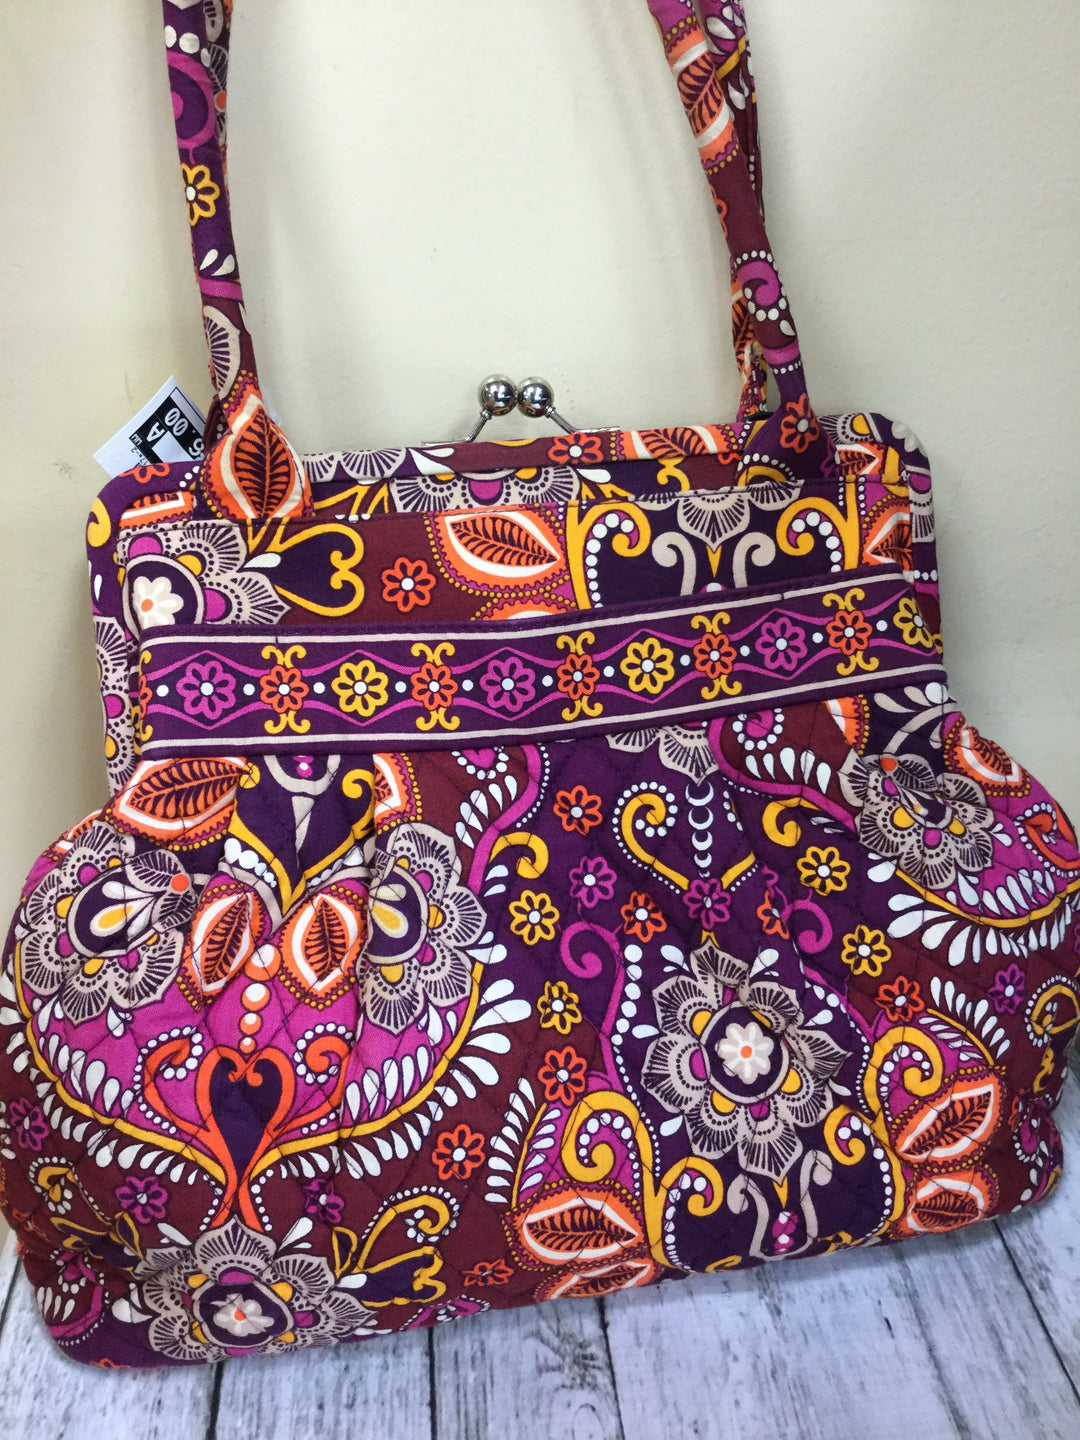 Primary Photo - BRAND: VERA BRADLEY <BR>STYLE: HANDBAG <BR>COLOR: MULTI <BR>SIZE: MEDIUM <BR>SKU: 127-2767-89324